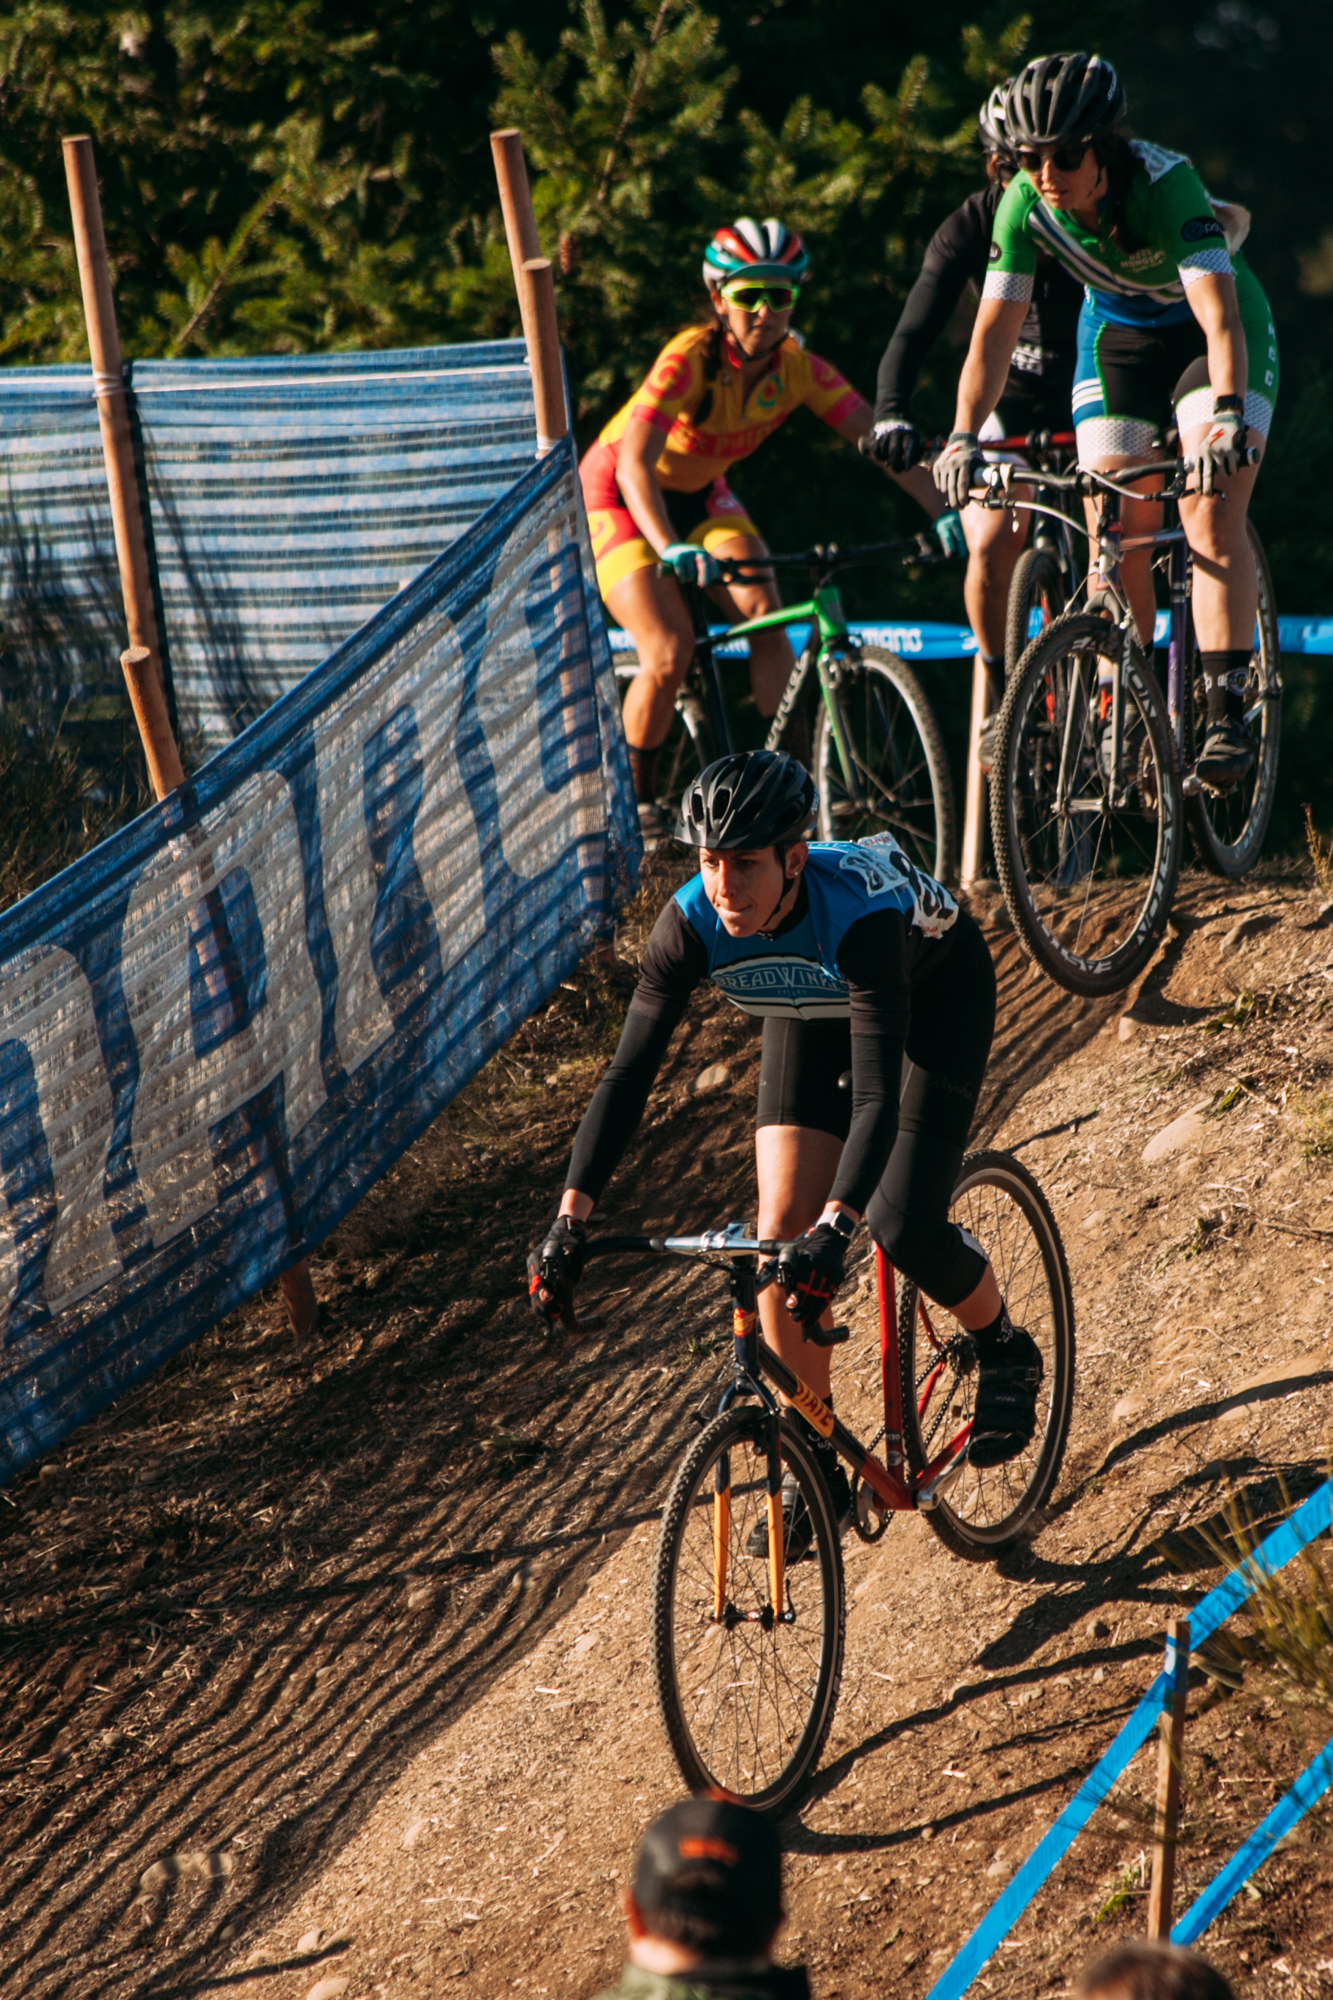 Cyclocross18_CCCX_BartonPark-mettlecycling21.jpg